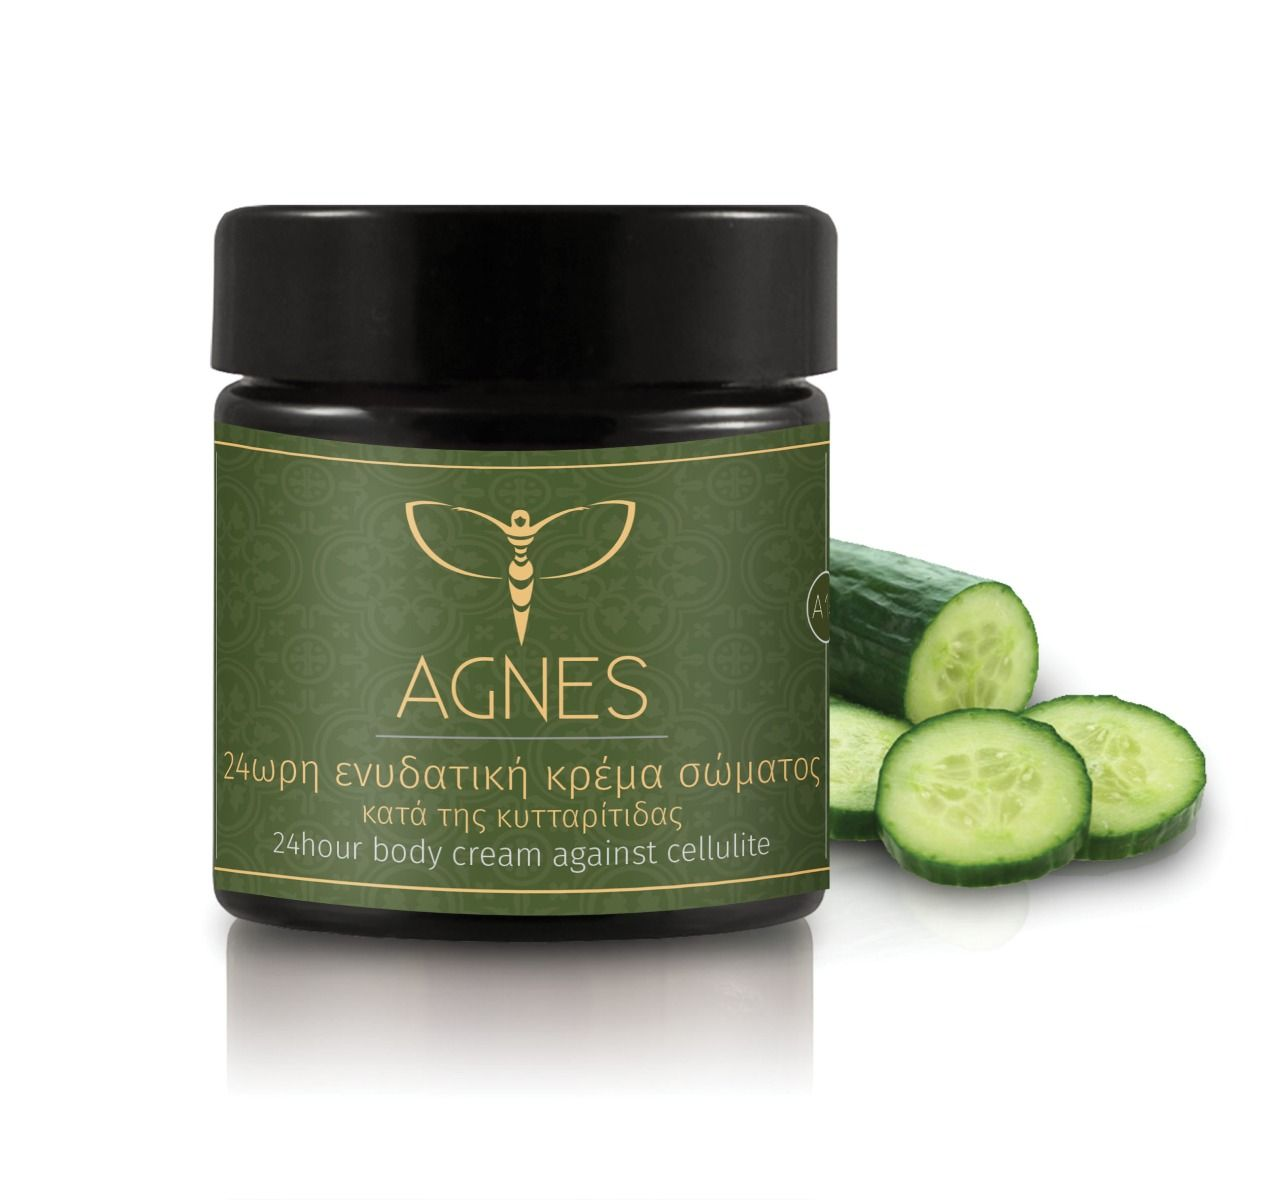 24hour moisturizing body cream against cellulite with ivy oil, calendula extract and fresh cucumber essence